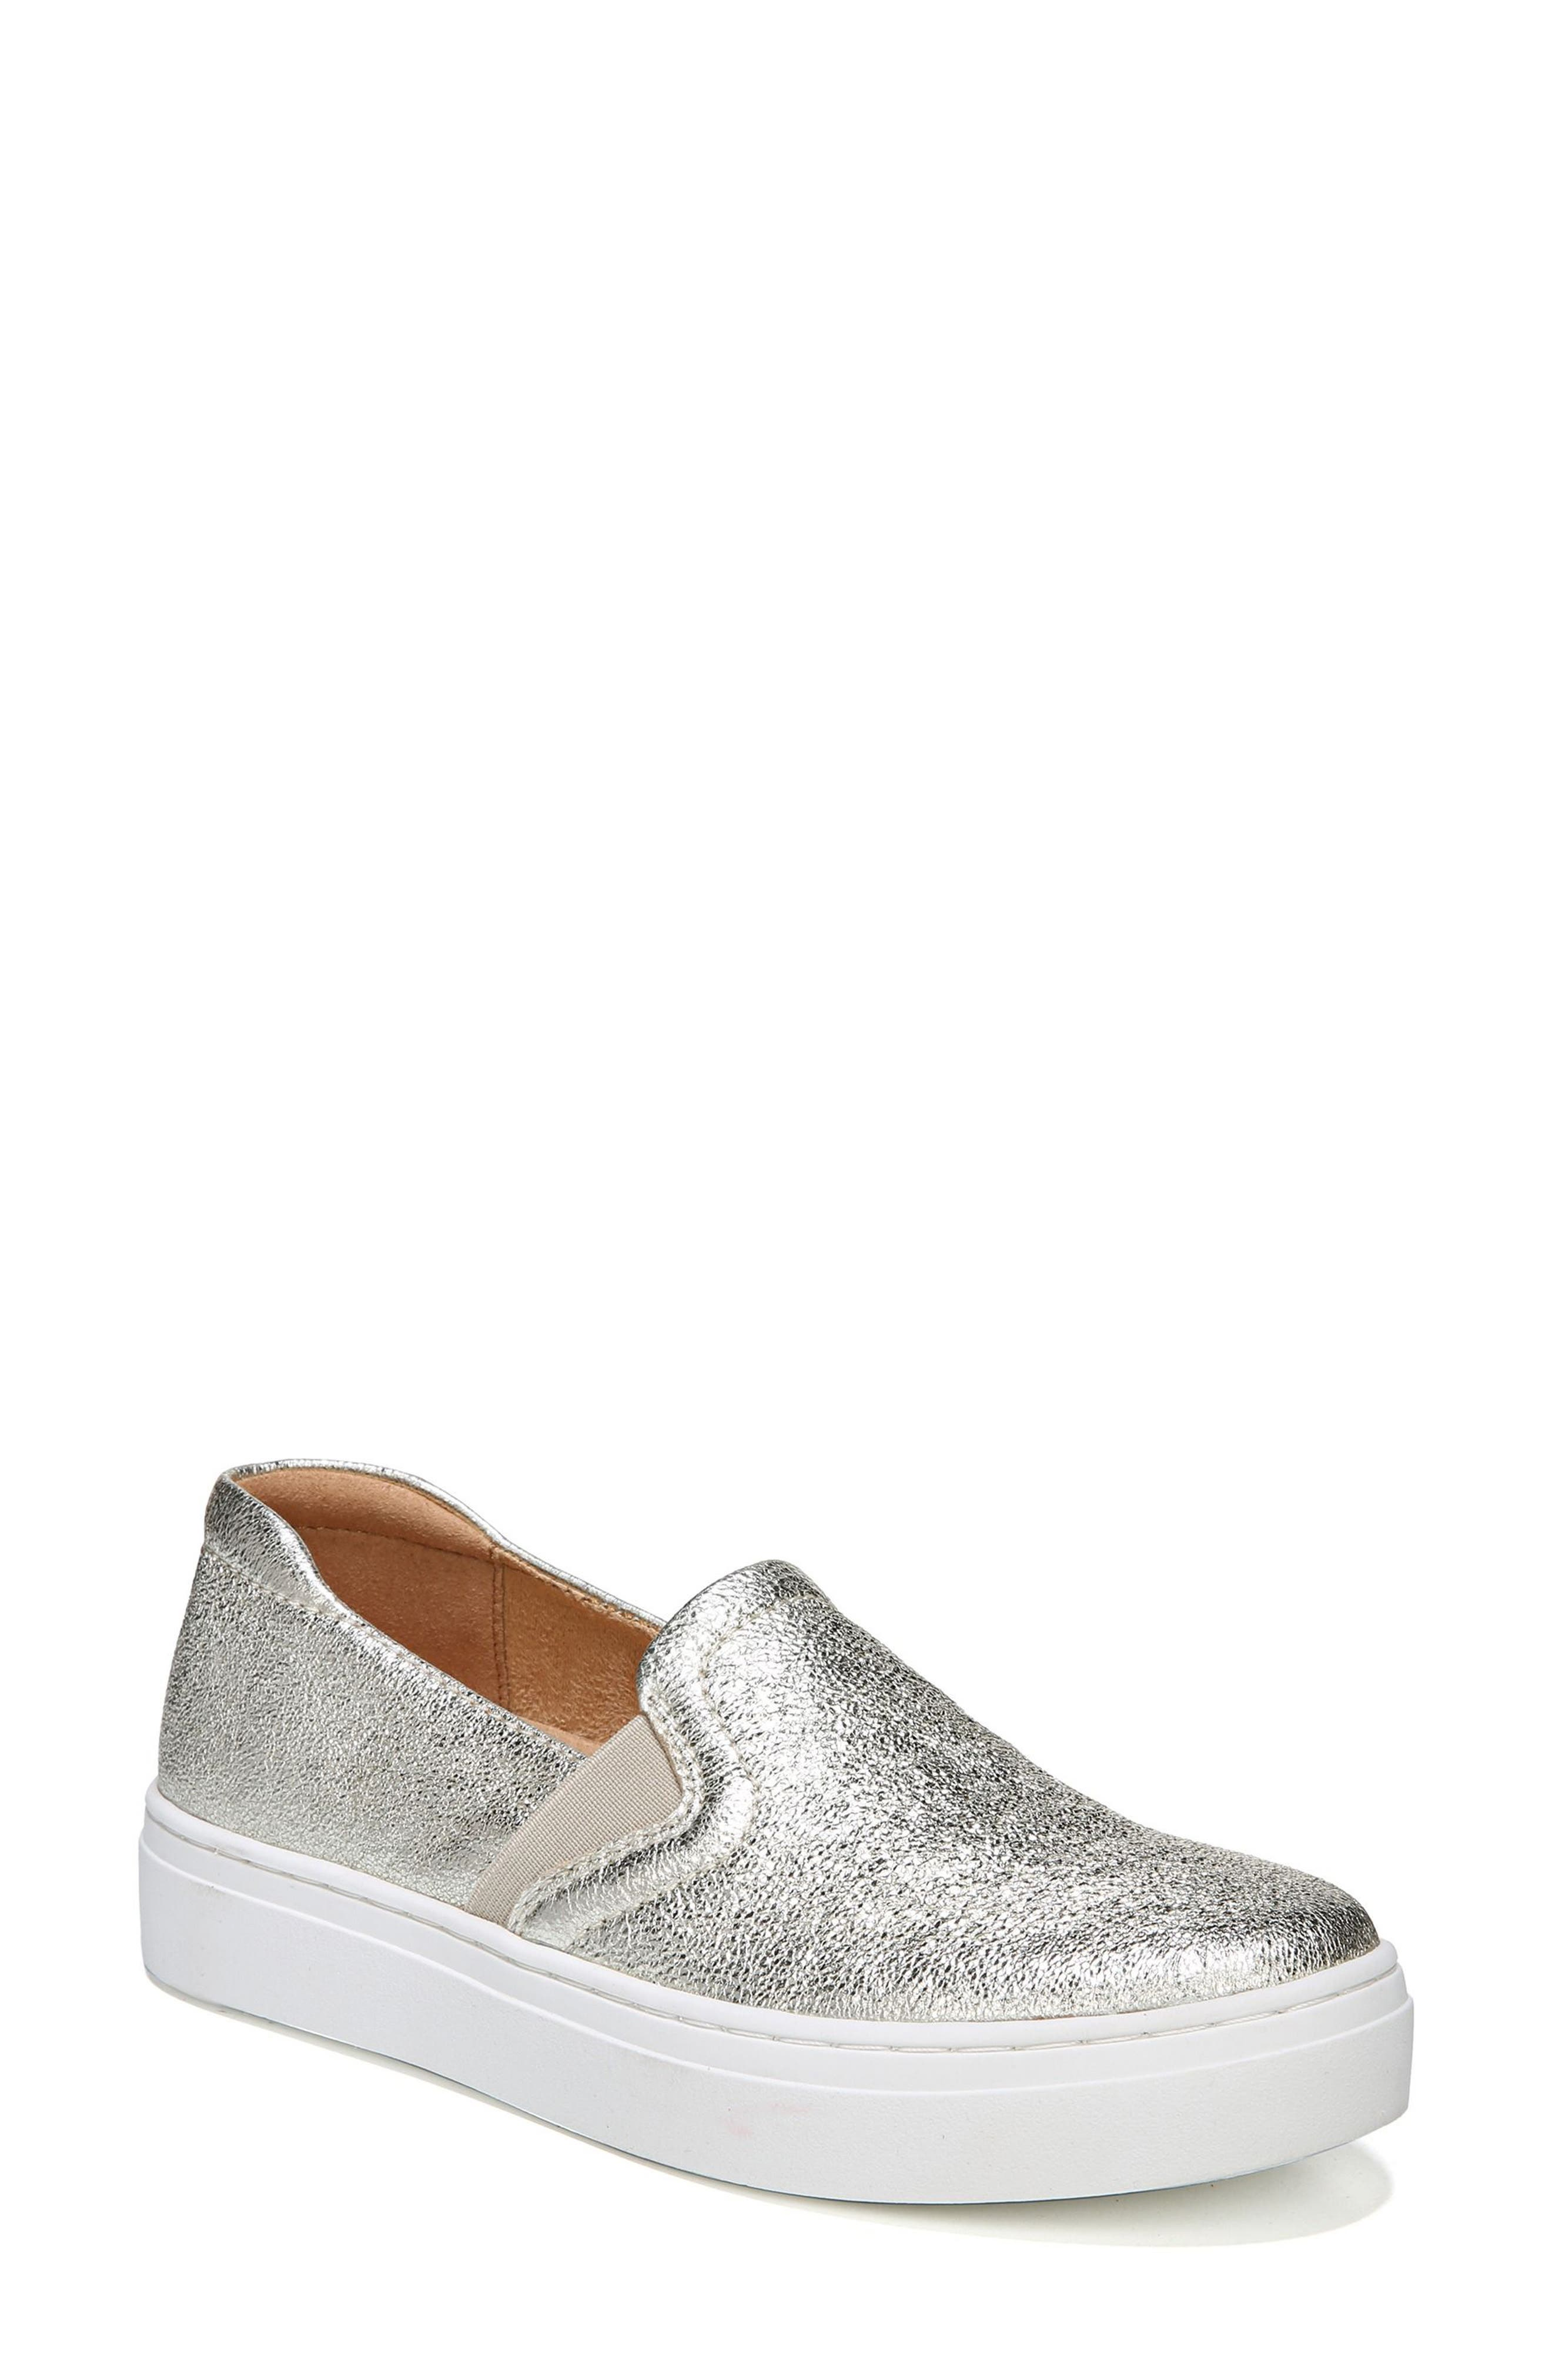 Naturalizer Carly Slip-On Sneaker- Metallic